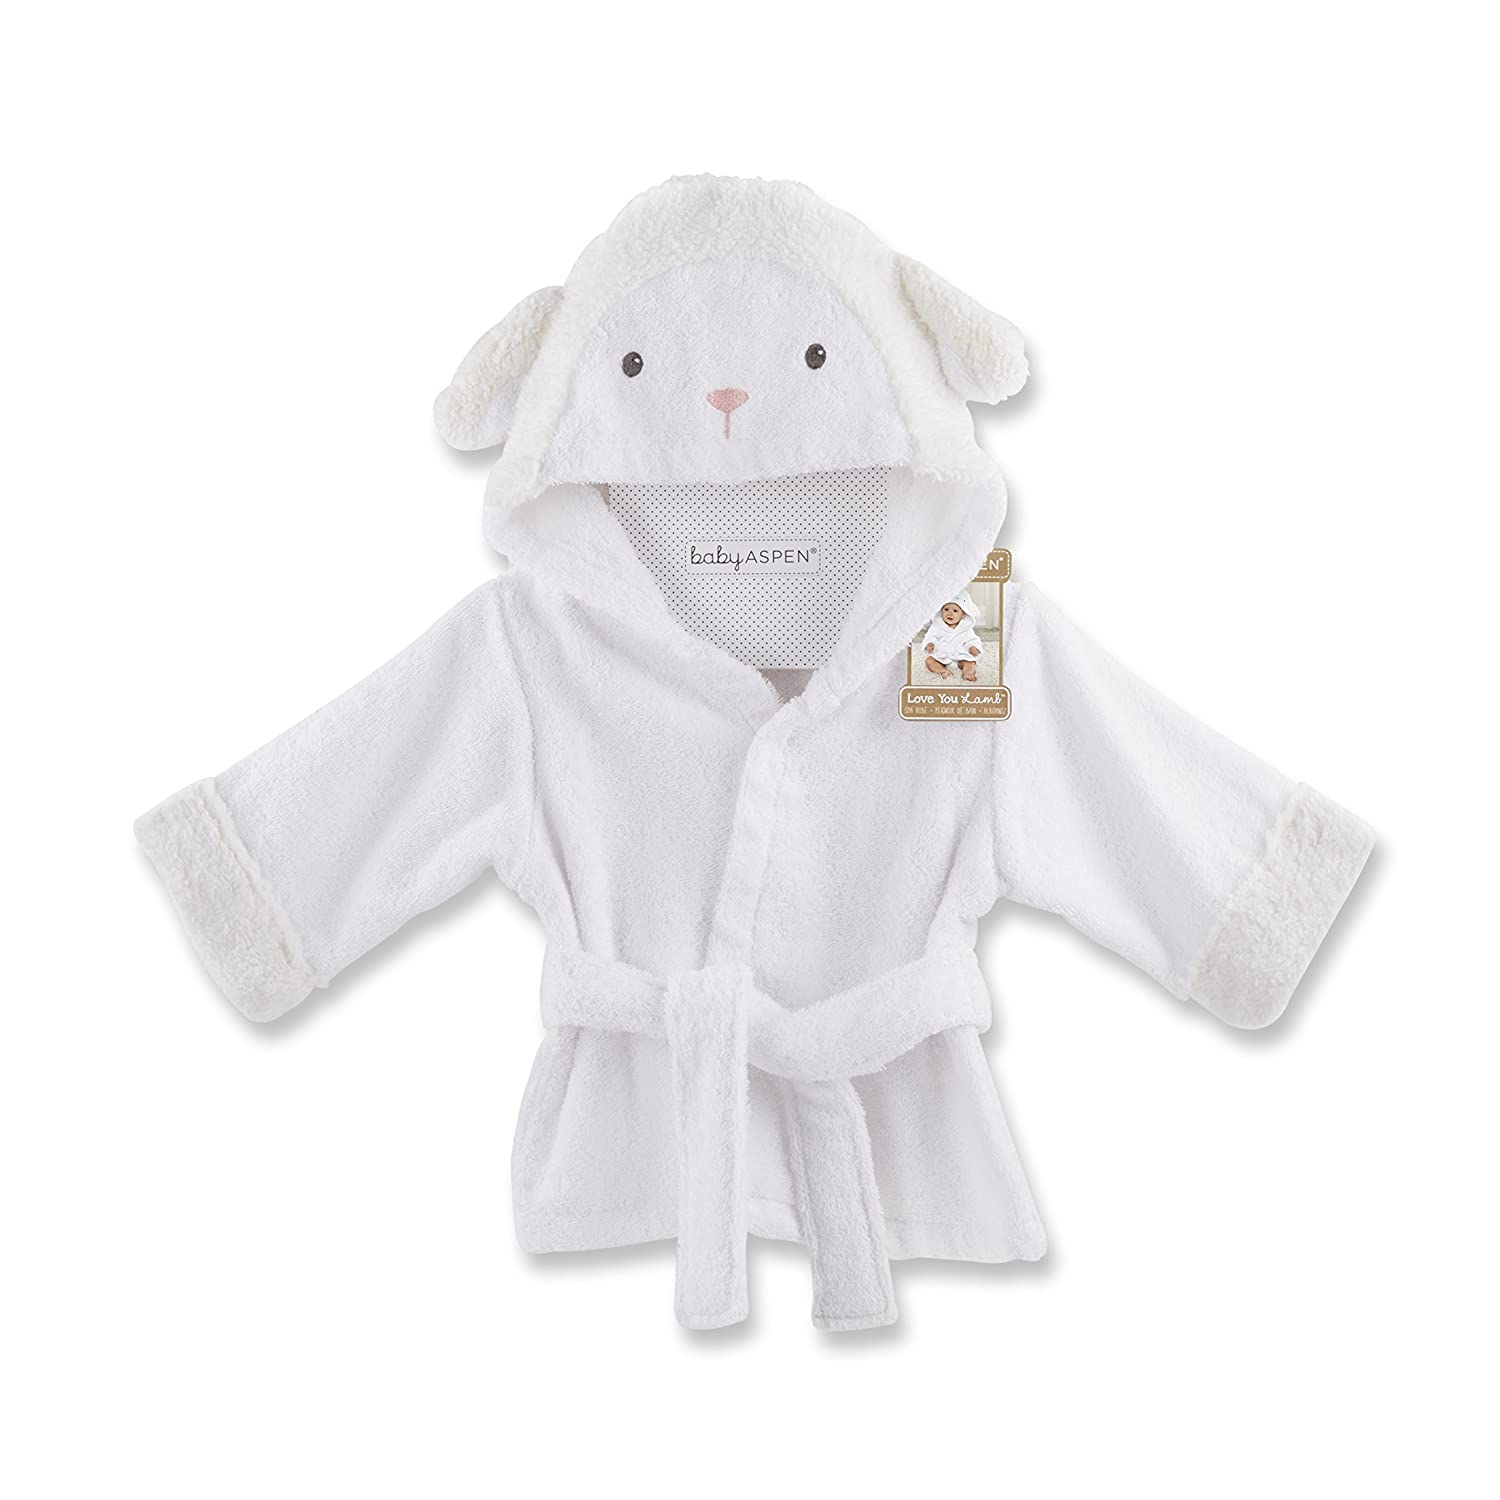 Baby Aspen Hooded Cat Robe with Ears Terry Cloth White and Floral Baby Bath Towel